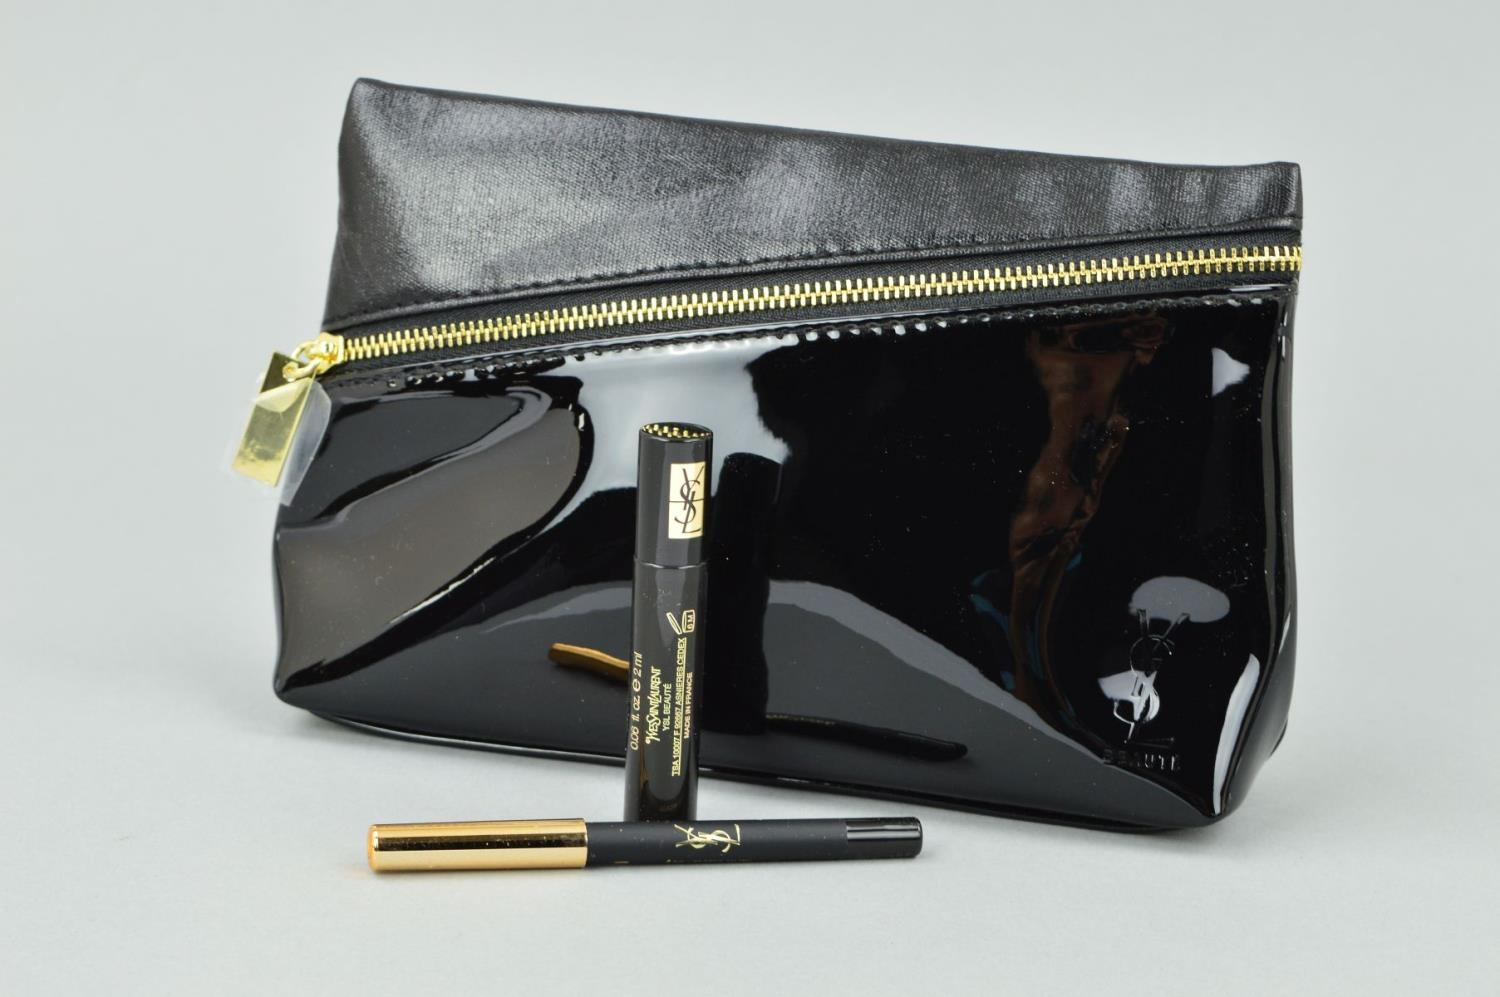 8cc6f297d066f YVES ST LAURENT CLUTCH BAG IN BLACK WITH A YVES ST LAURENT EYE PENCIL